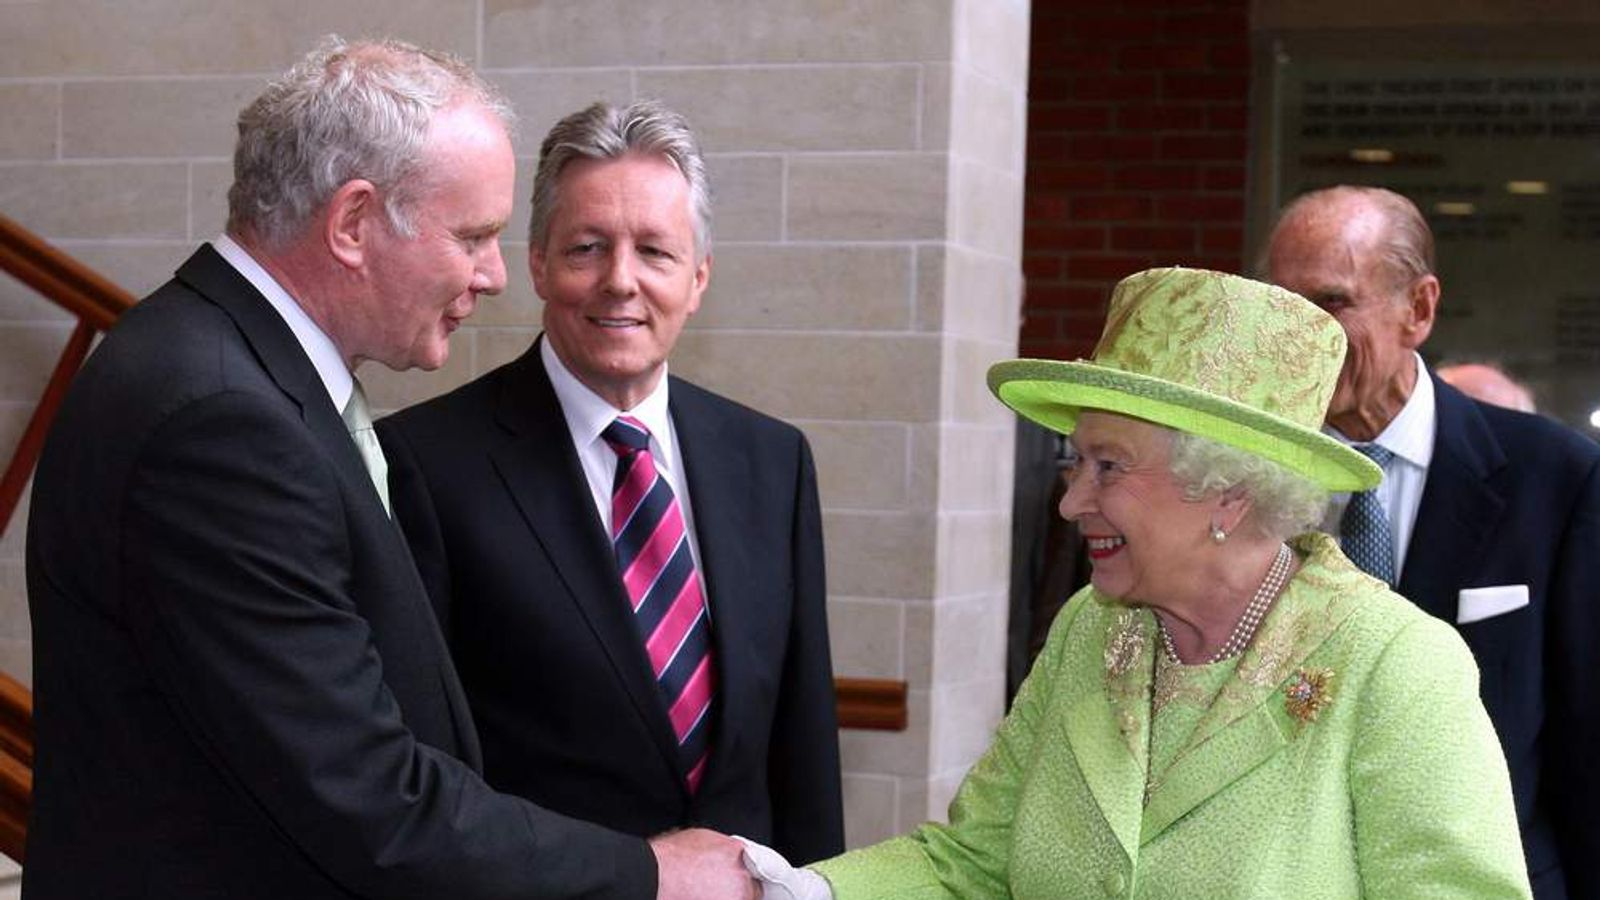 Queen Elizabeth II shakes hands with Northern Ireland Deputy First Minister Martin McGuinness